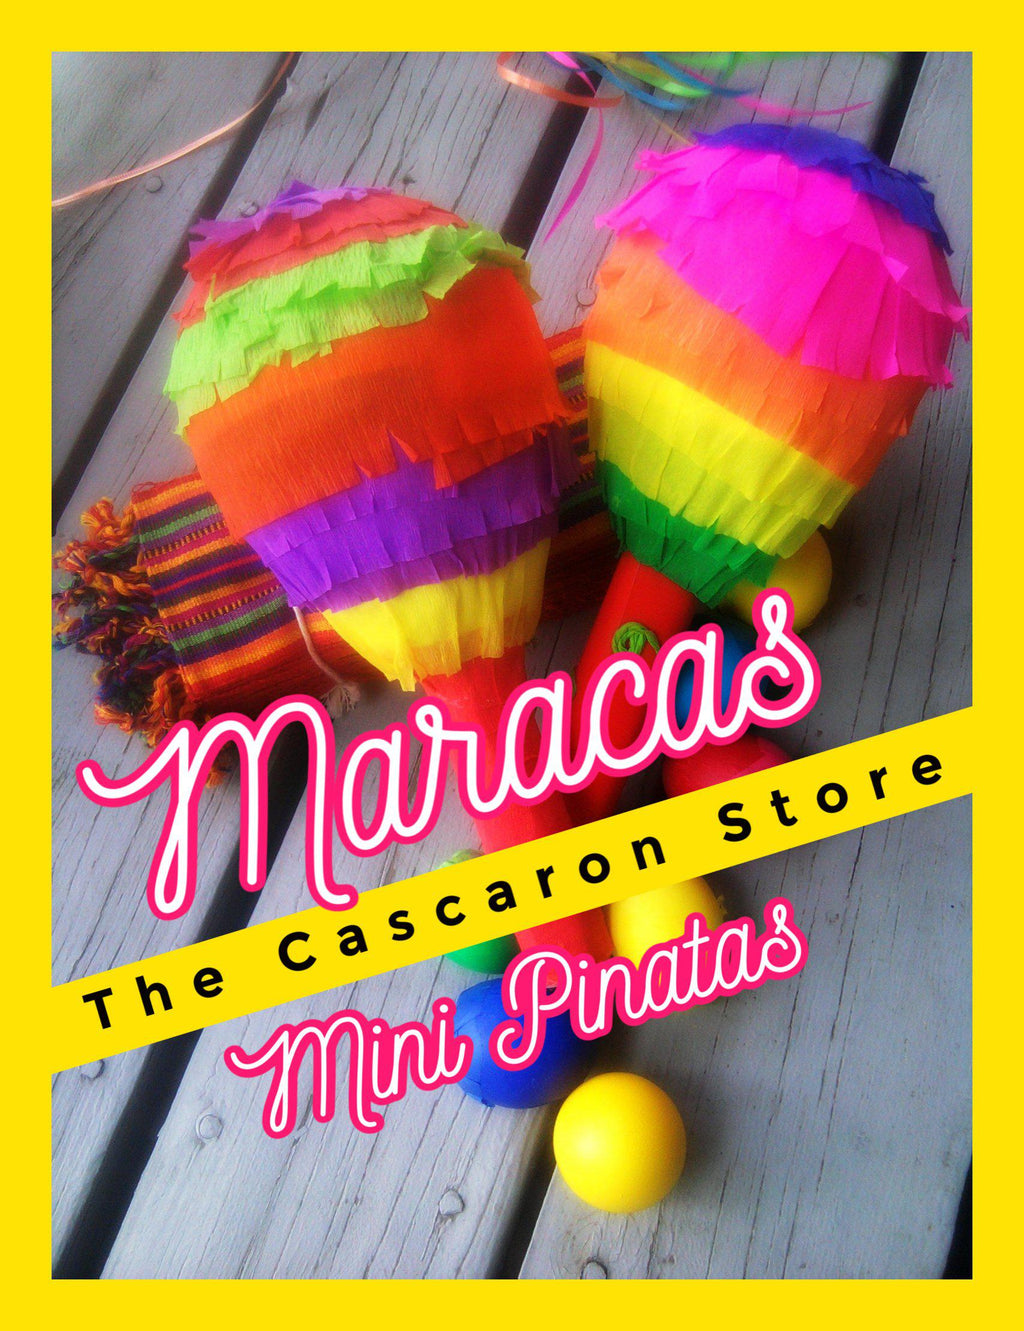 Maracas Mini Pinata Fiesta Party Decorationw Maracas Mini Pinata Fiesta Party Decorationw - Fiesta Arts DesignsMini Pinata